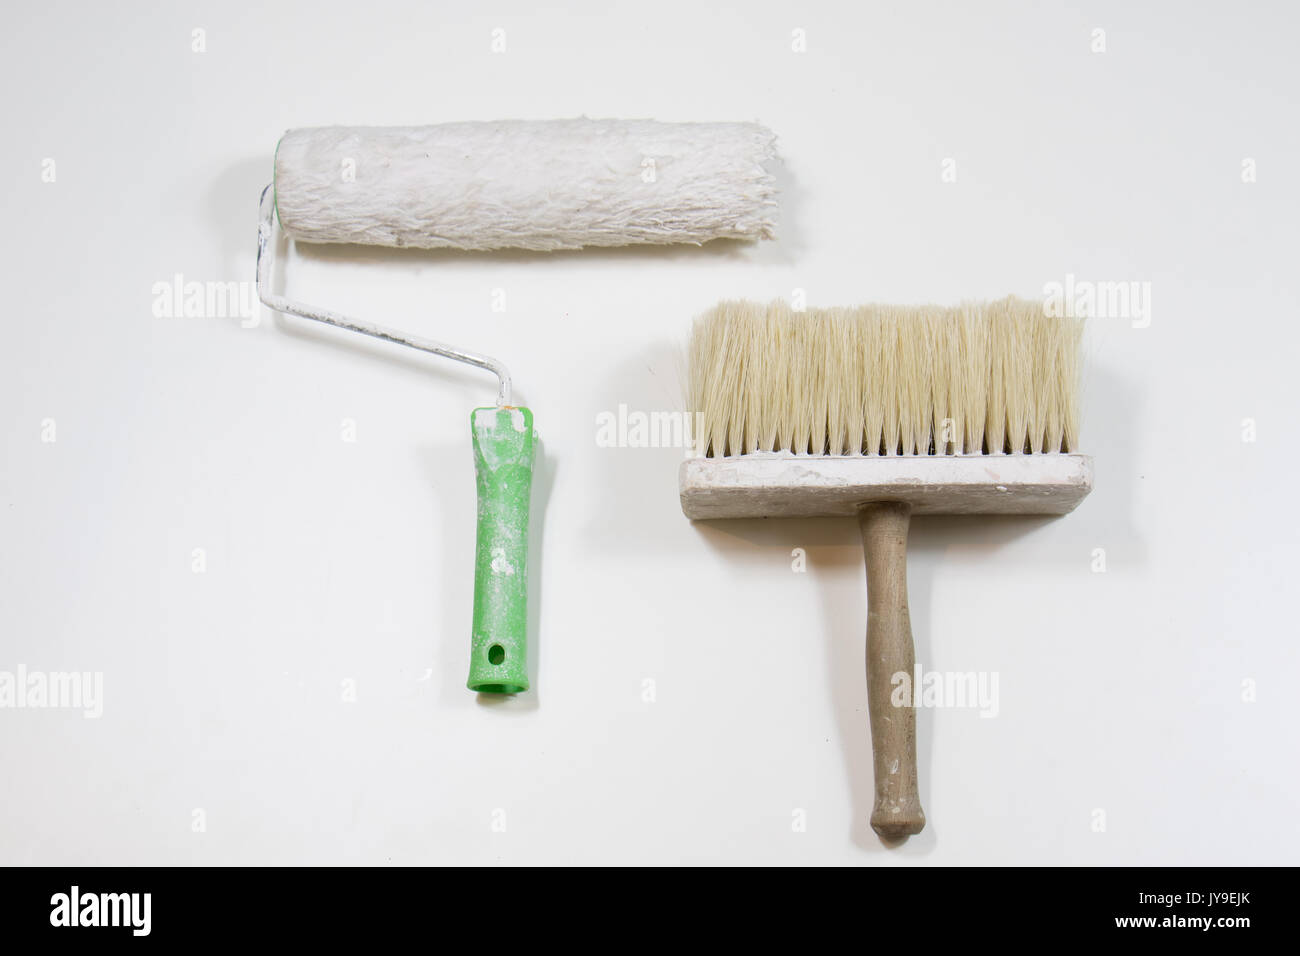 Old Paint Brushes Diy Stock Photos Amp Old Paint Brushes Diy